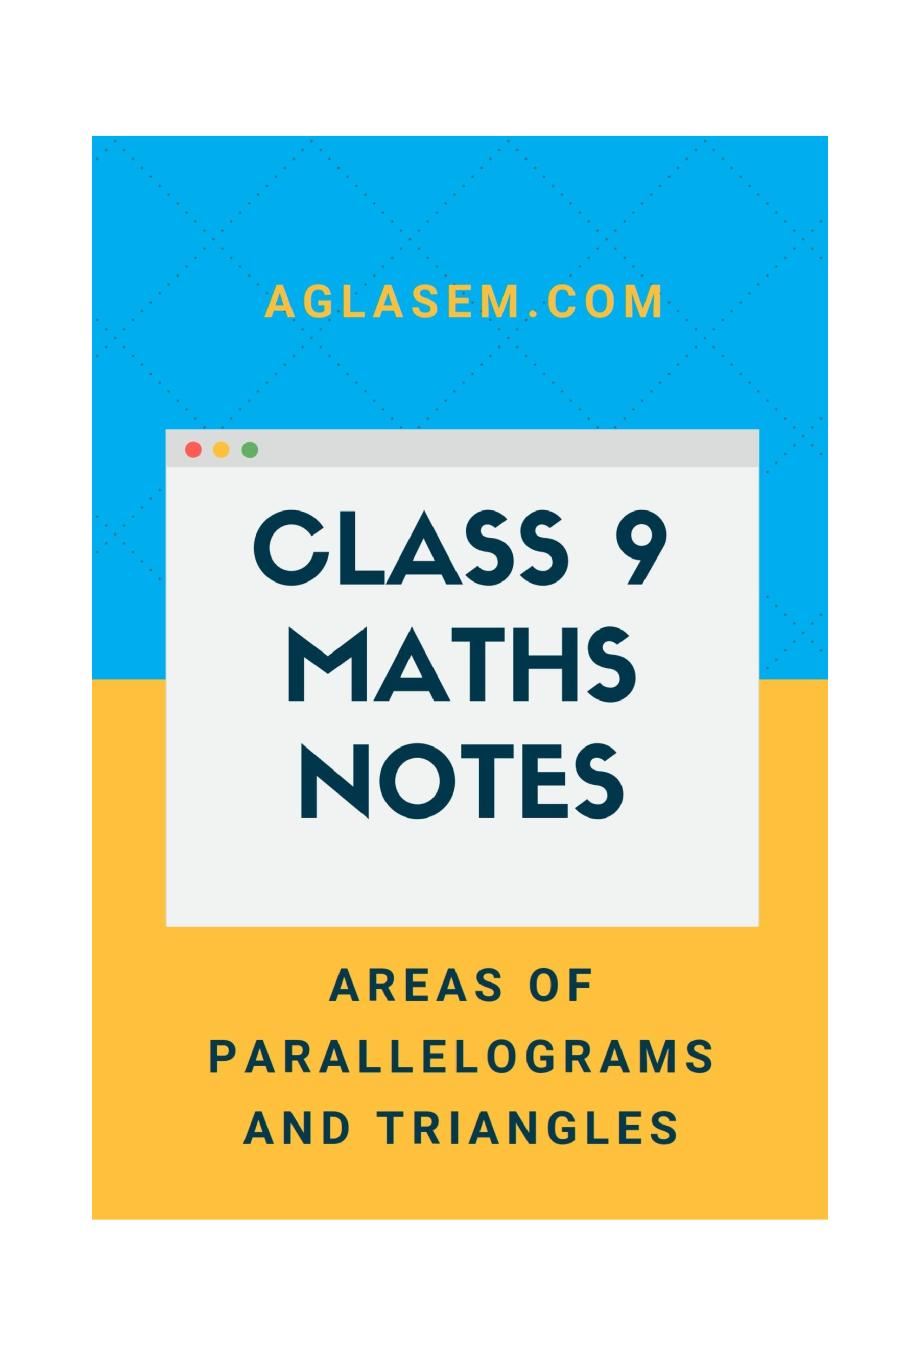 Class 9 Math Parallelograms And Triangles Notes, Important Questions & Practice Paper